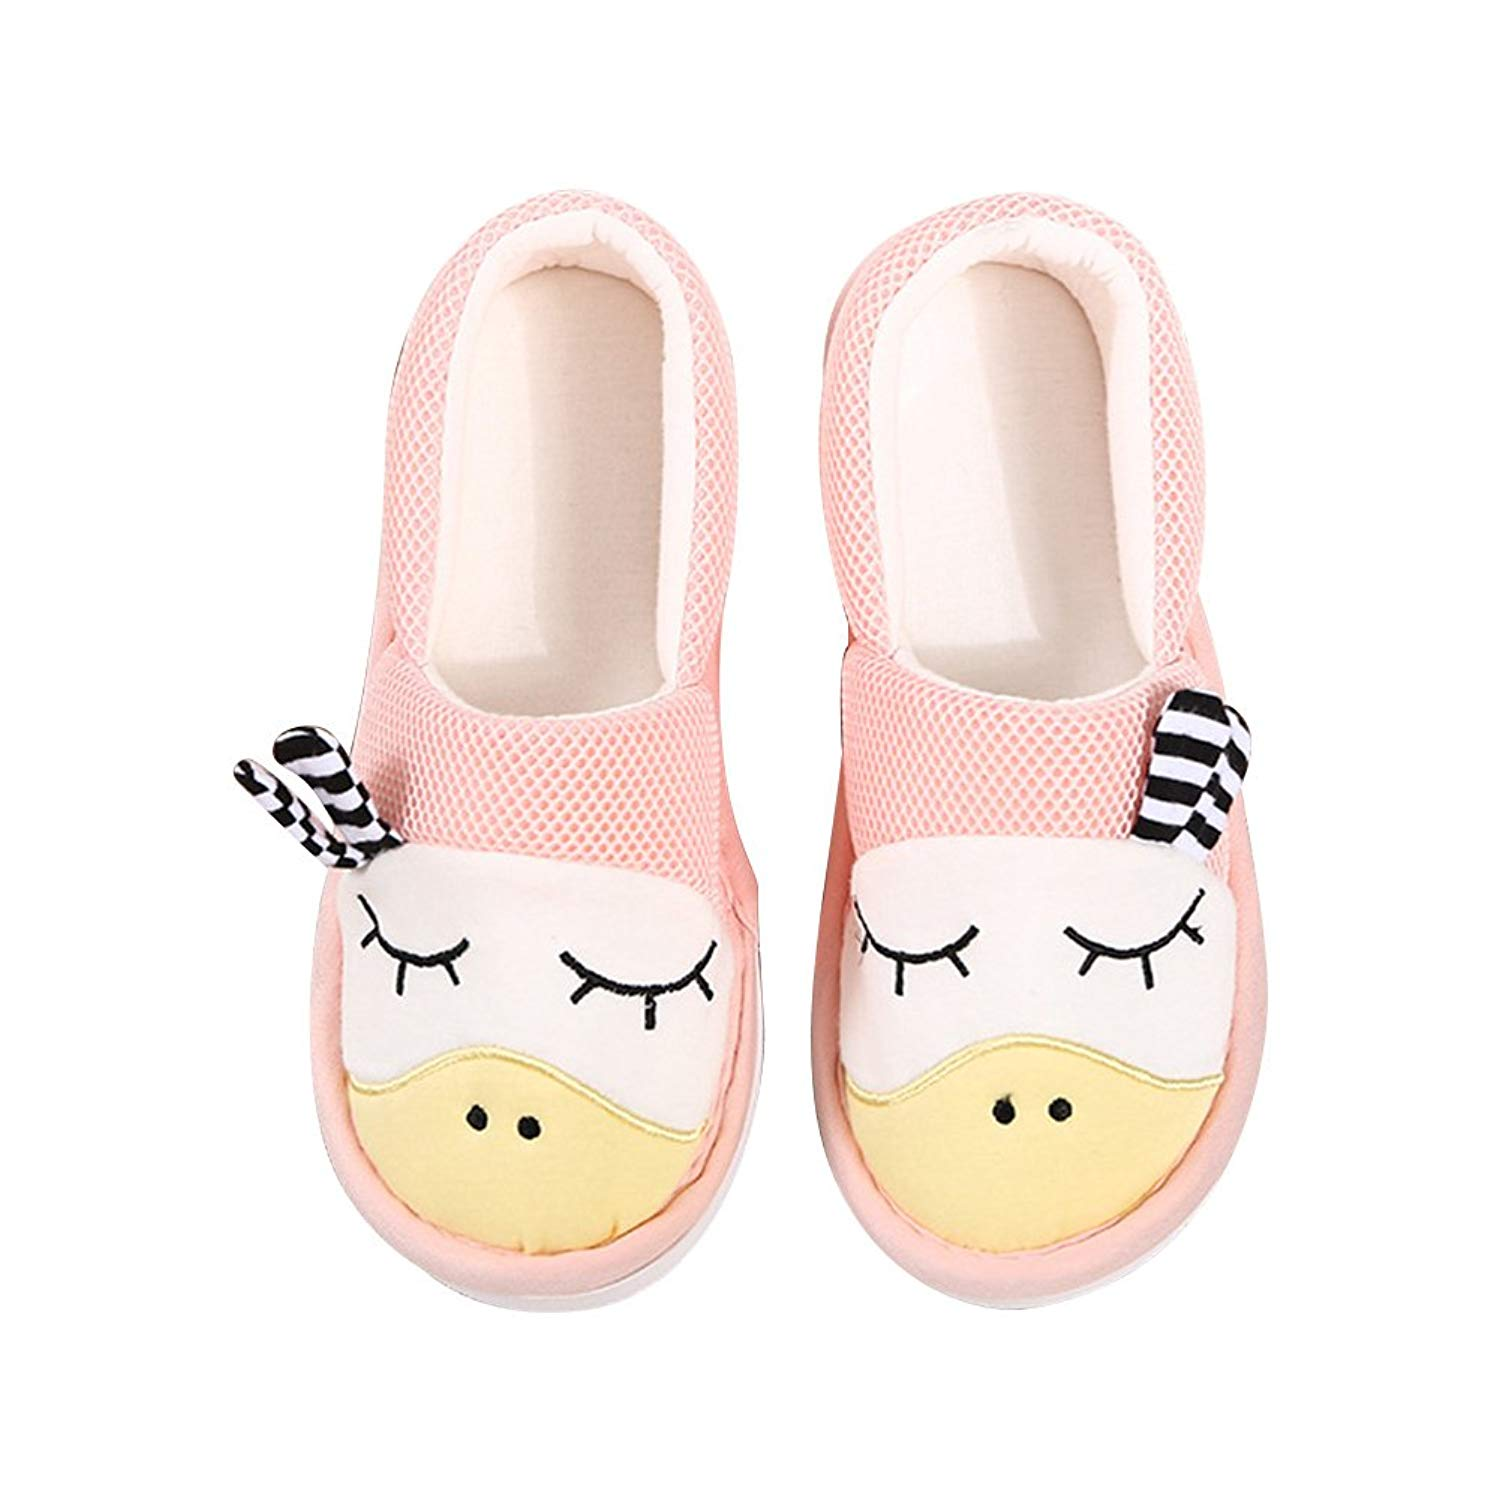 BUYITNOW Women's Comfort Knitted Cotton Slippers Washable Flat Closed Toe Ultra for Pregnant, Diabetic, Edema